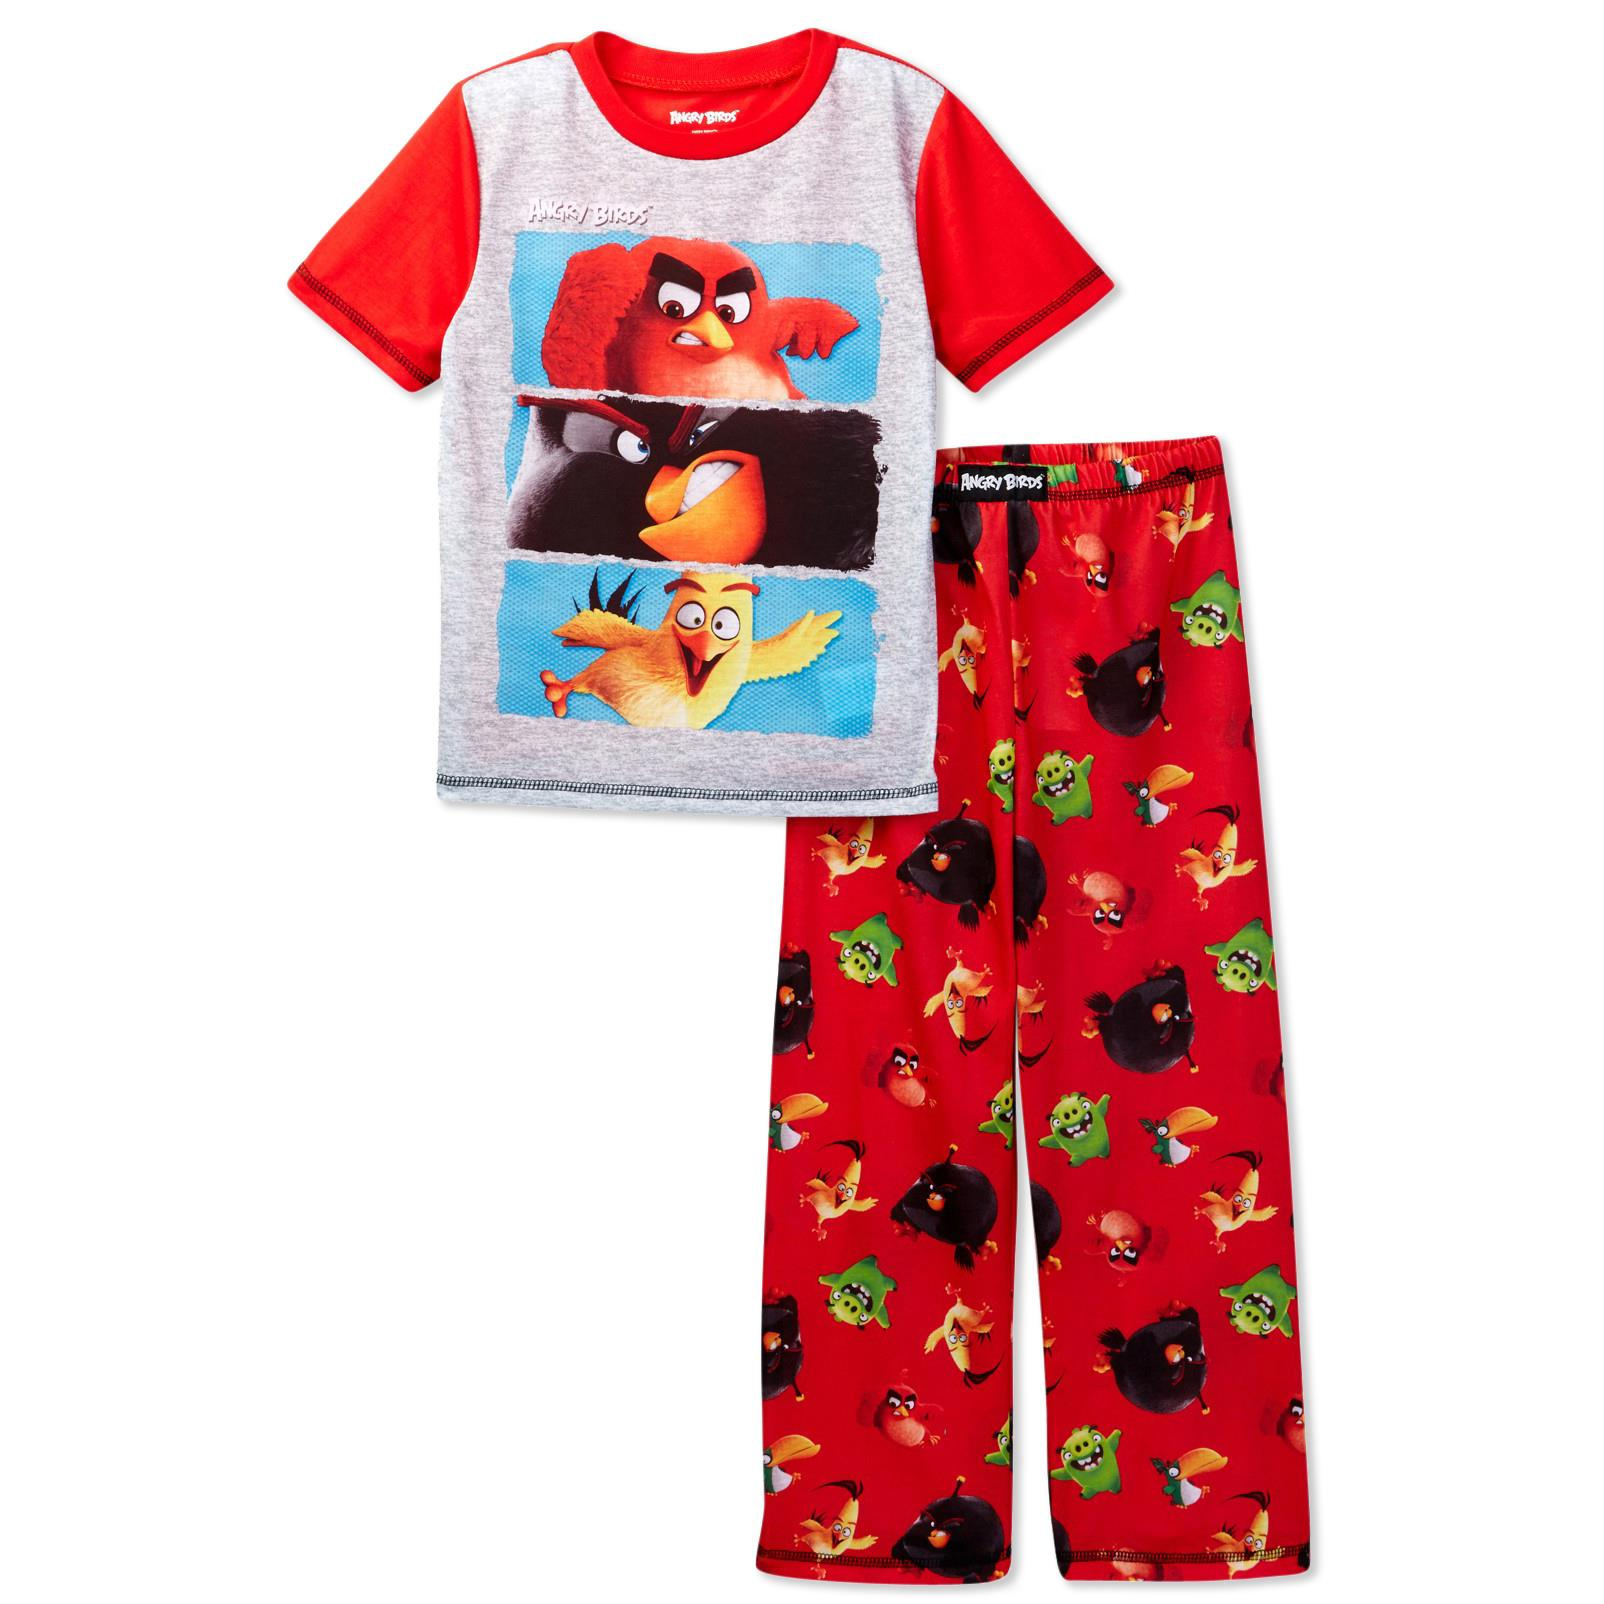 Angry Birds Big Boys' 2pc Sleepwear Set